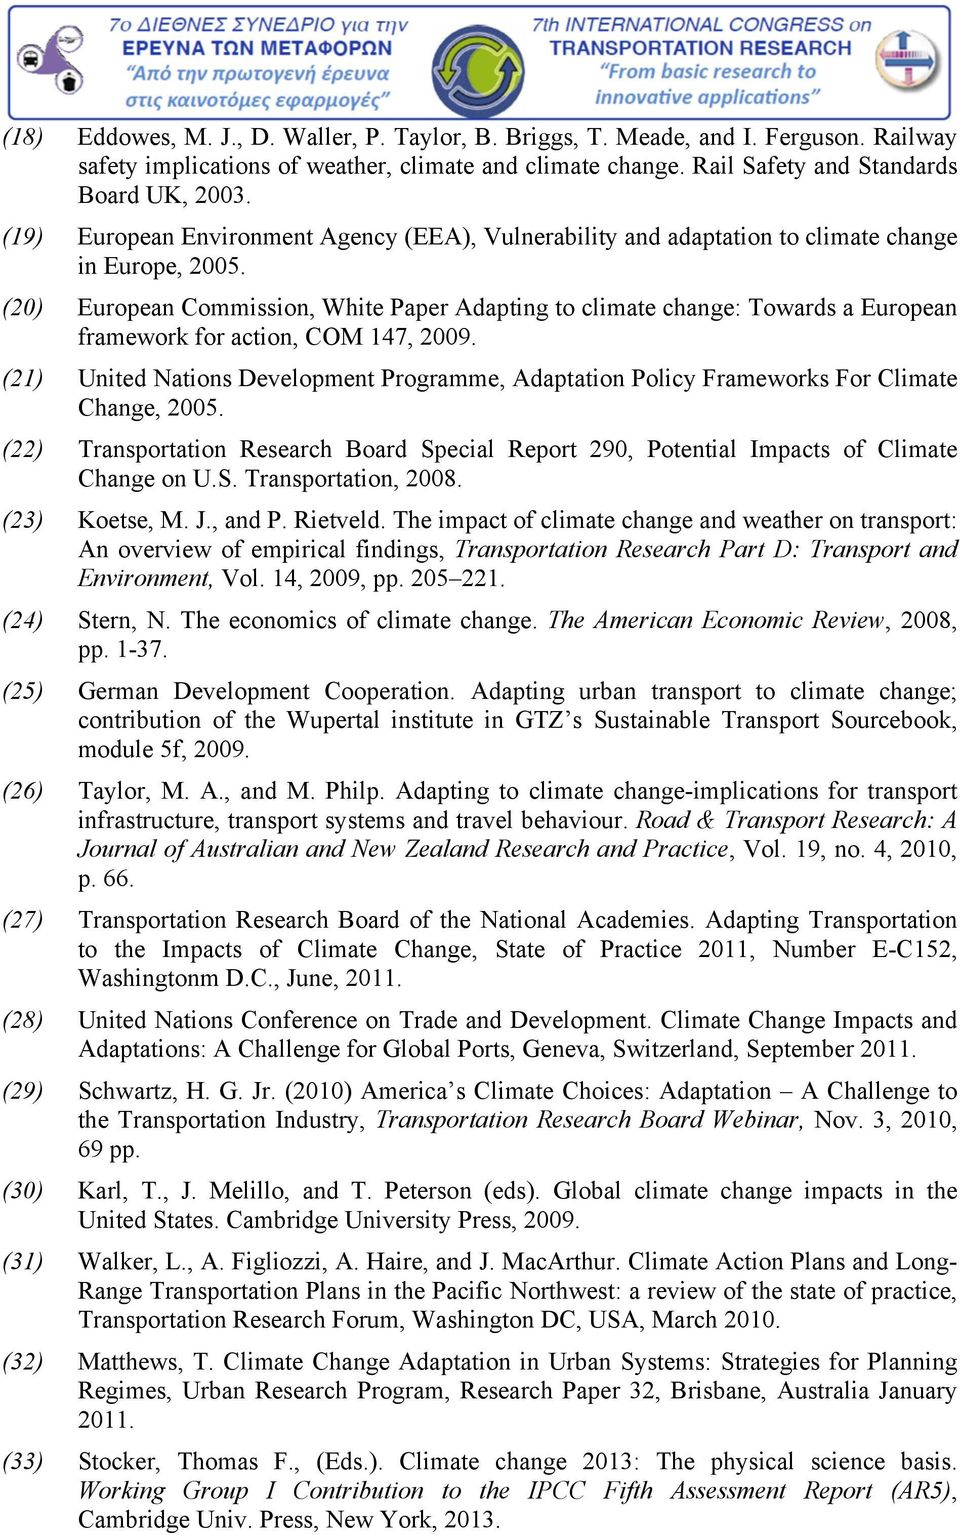 (20) European Commission, White Paper Adapting to climate change: Towards a European framework for action, COM 147, 2009.